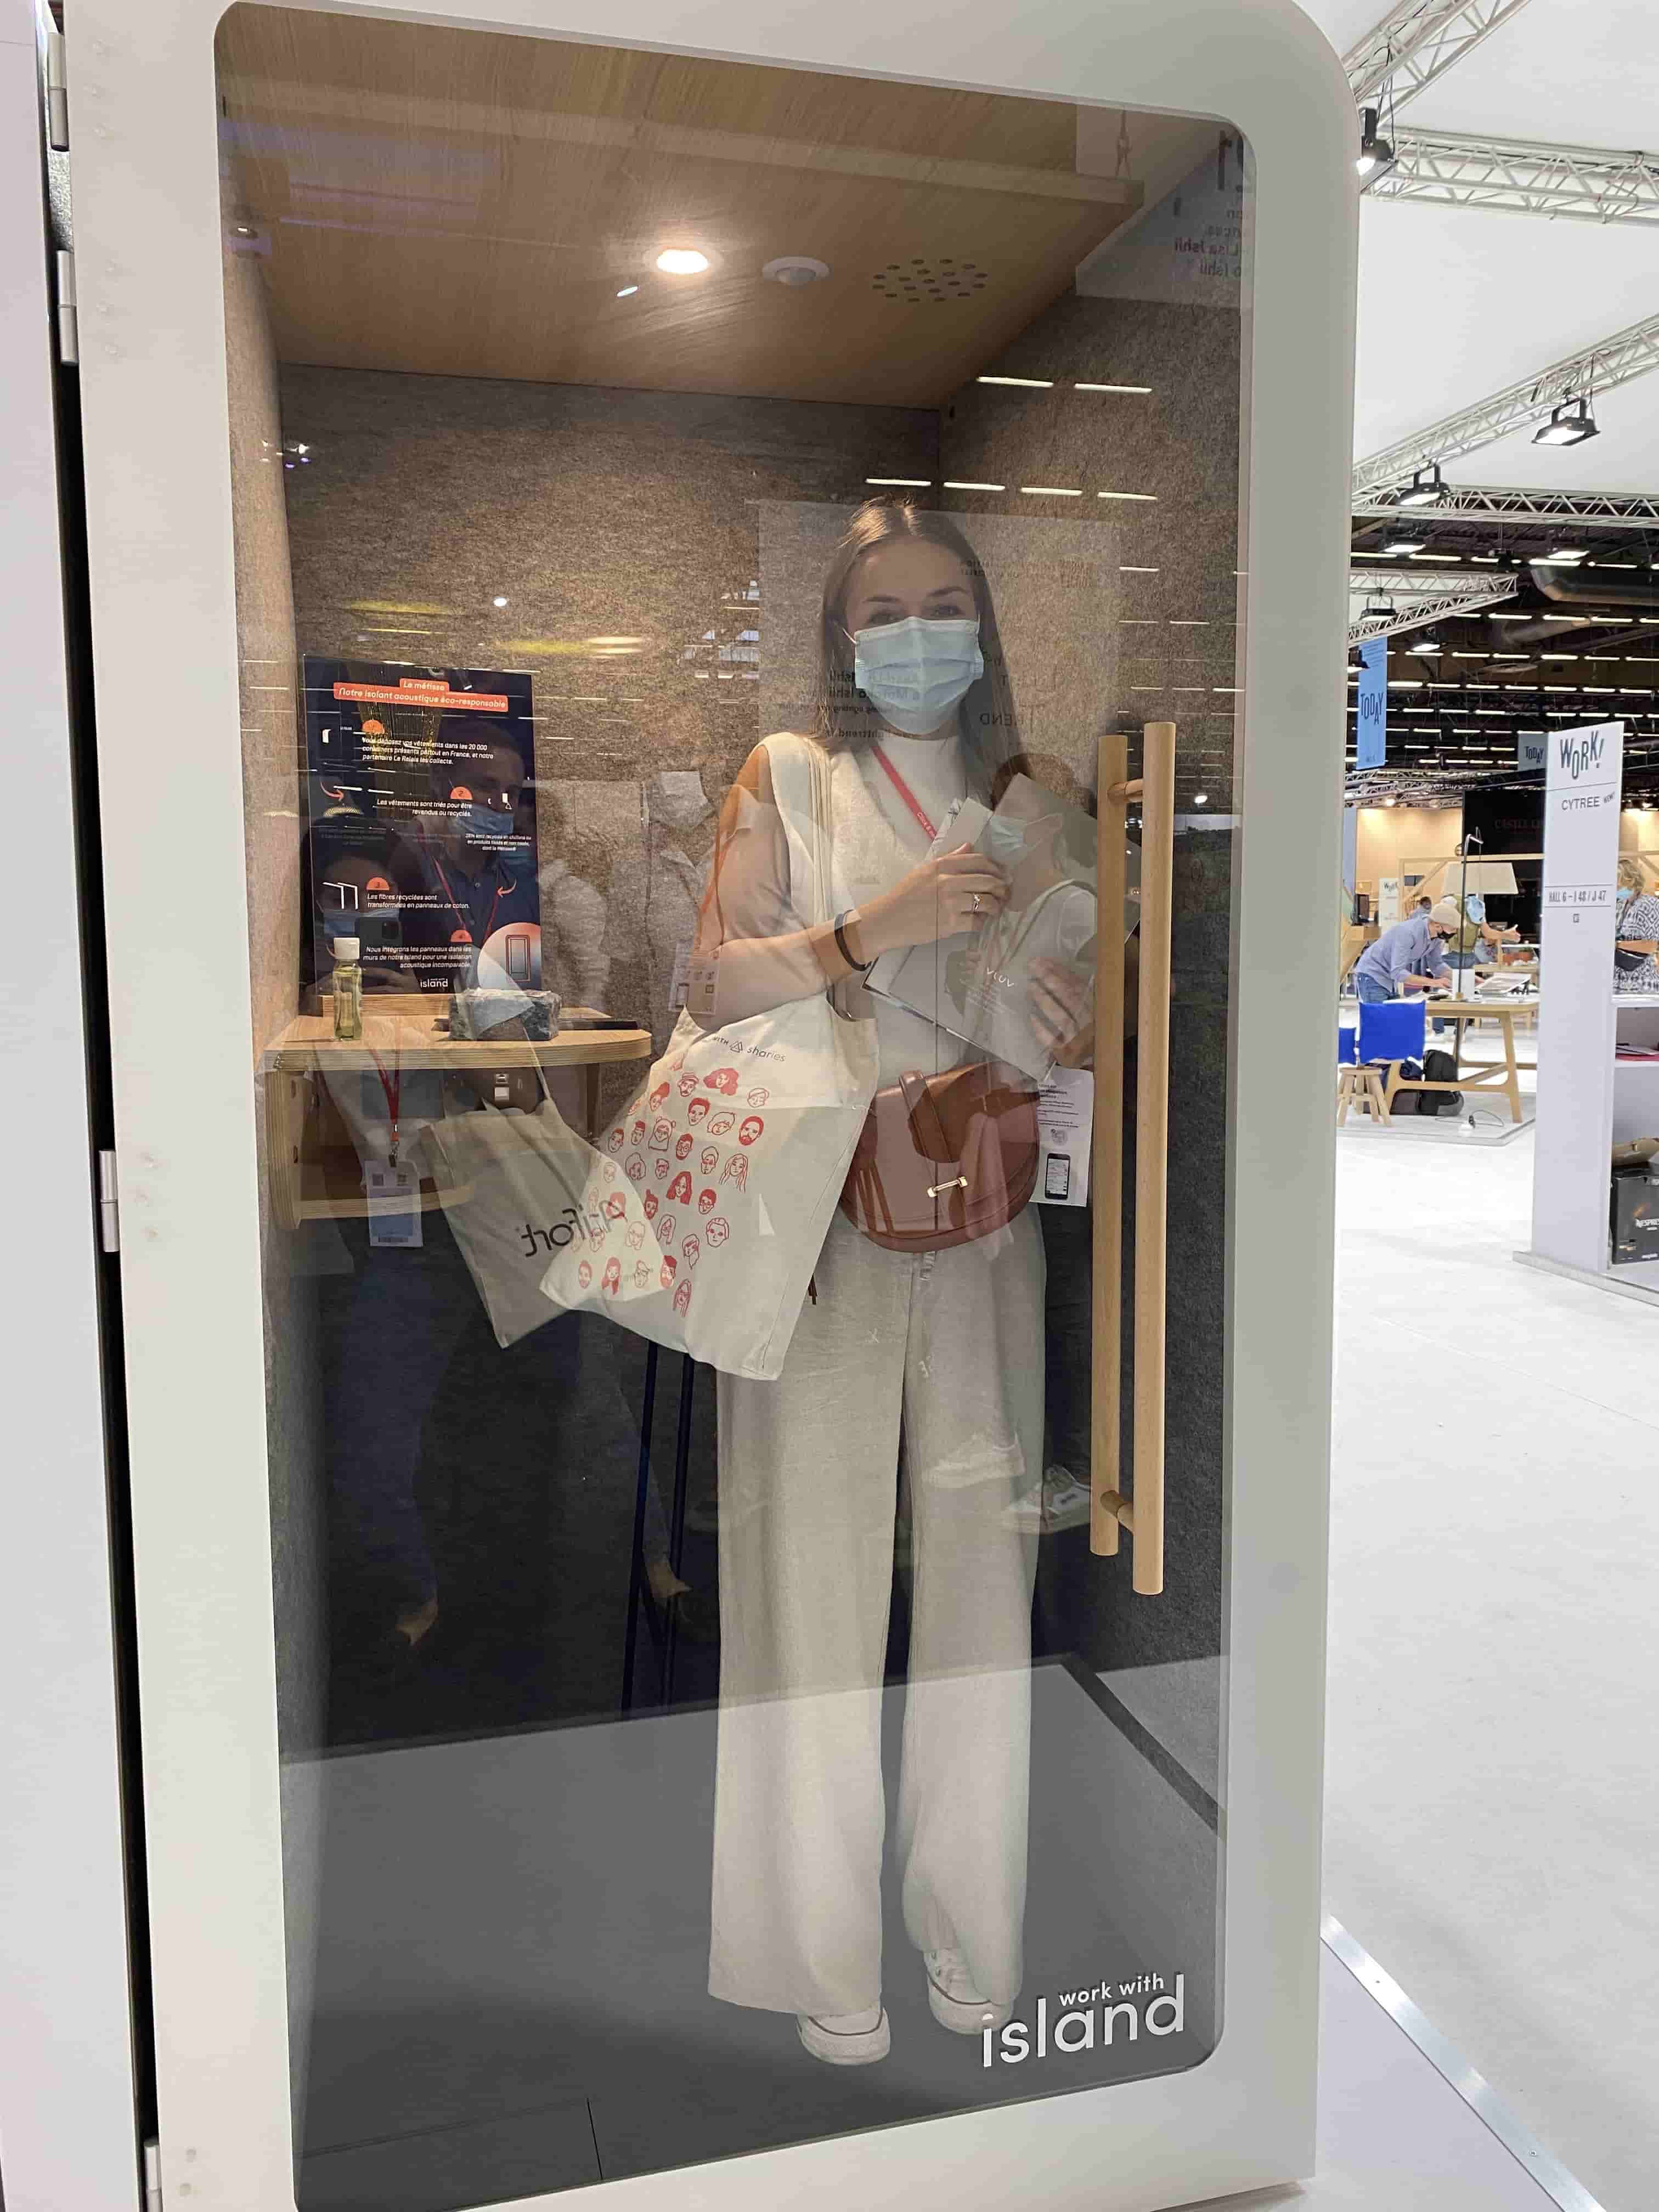 Maison & objet cabine phone booth